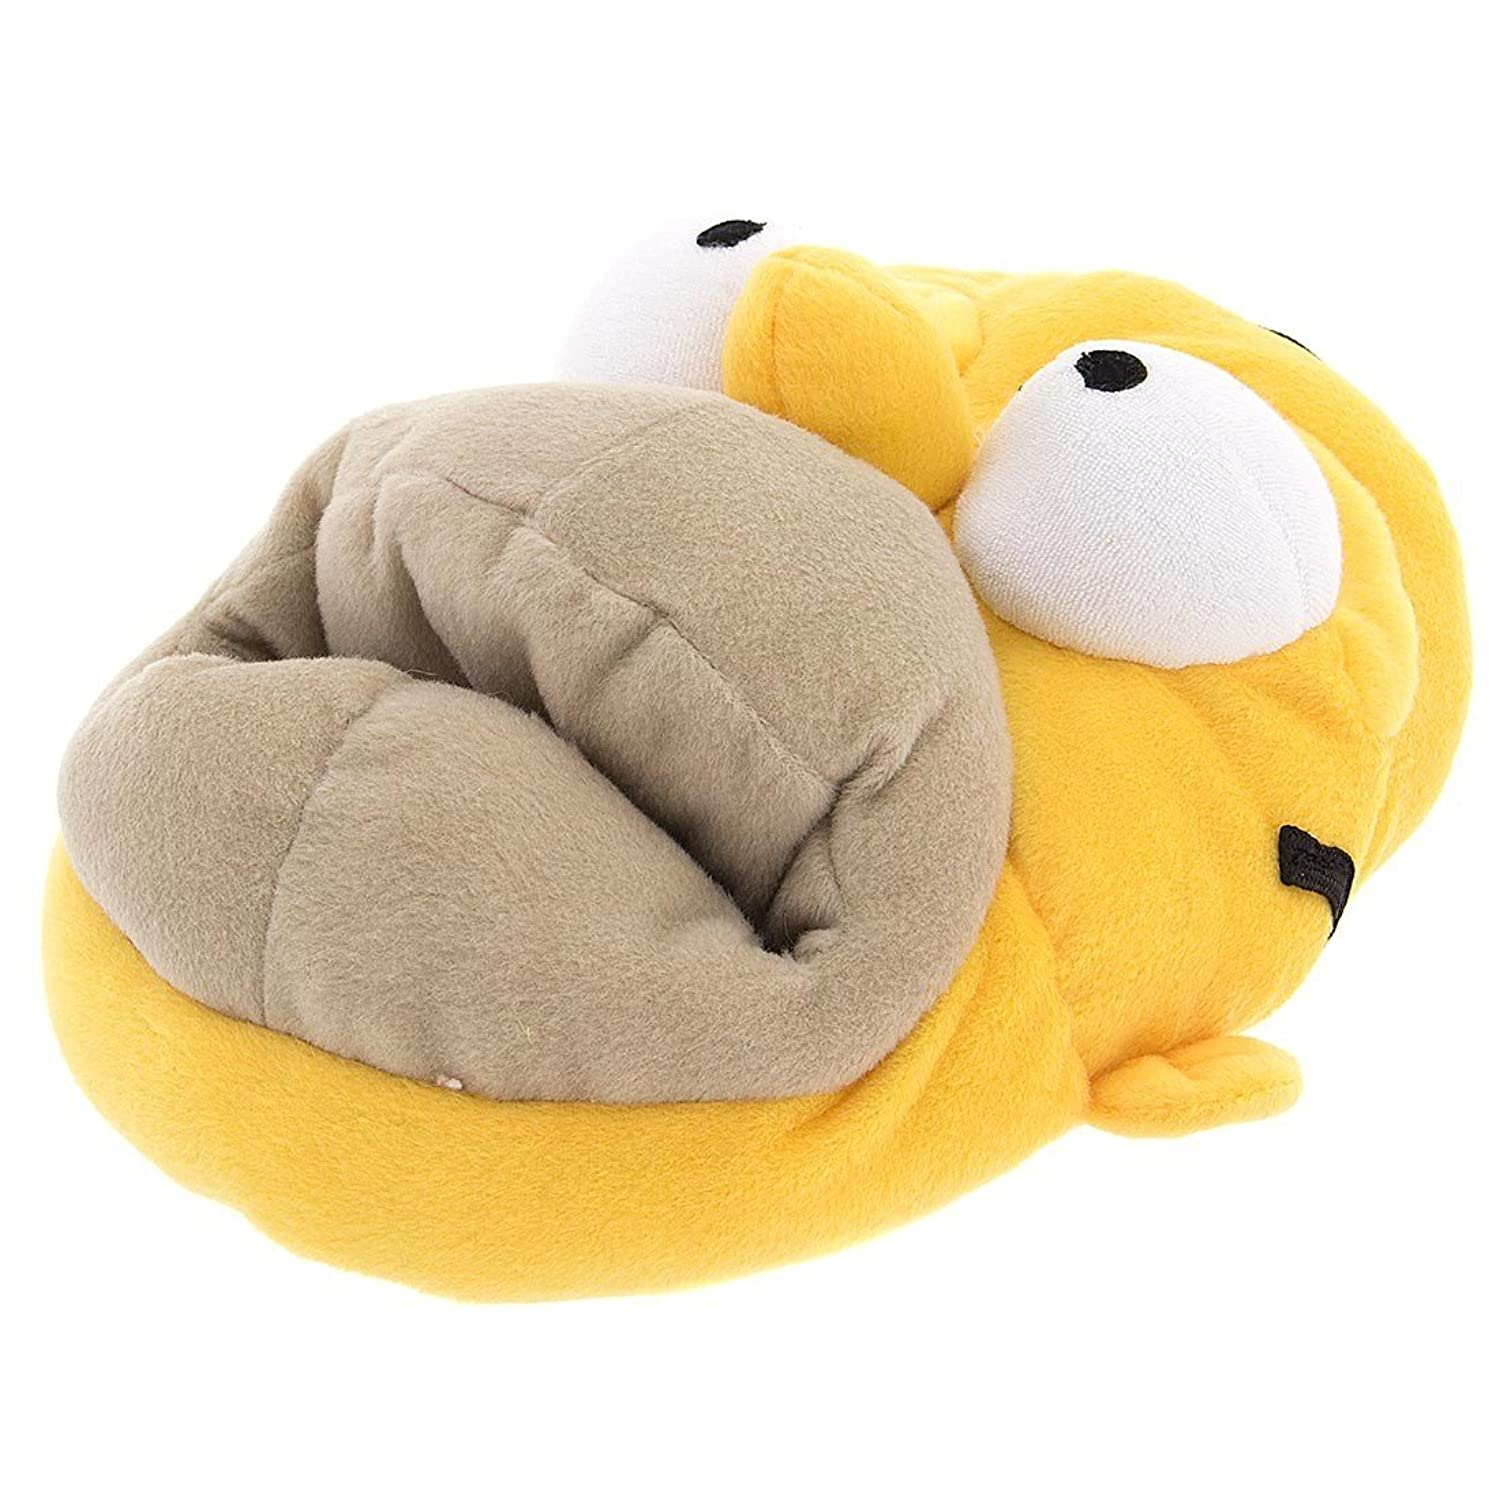 Mens Shoe Slippers Homer Simpson Slippers For Men